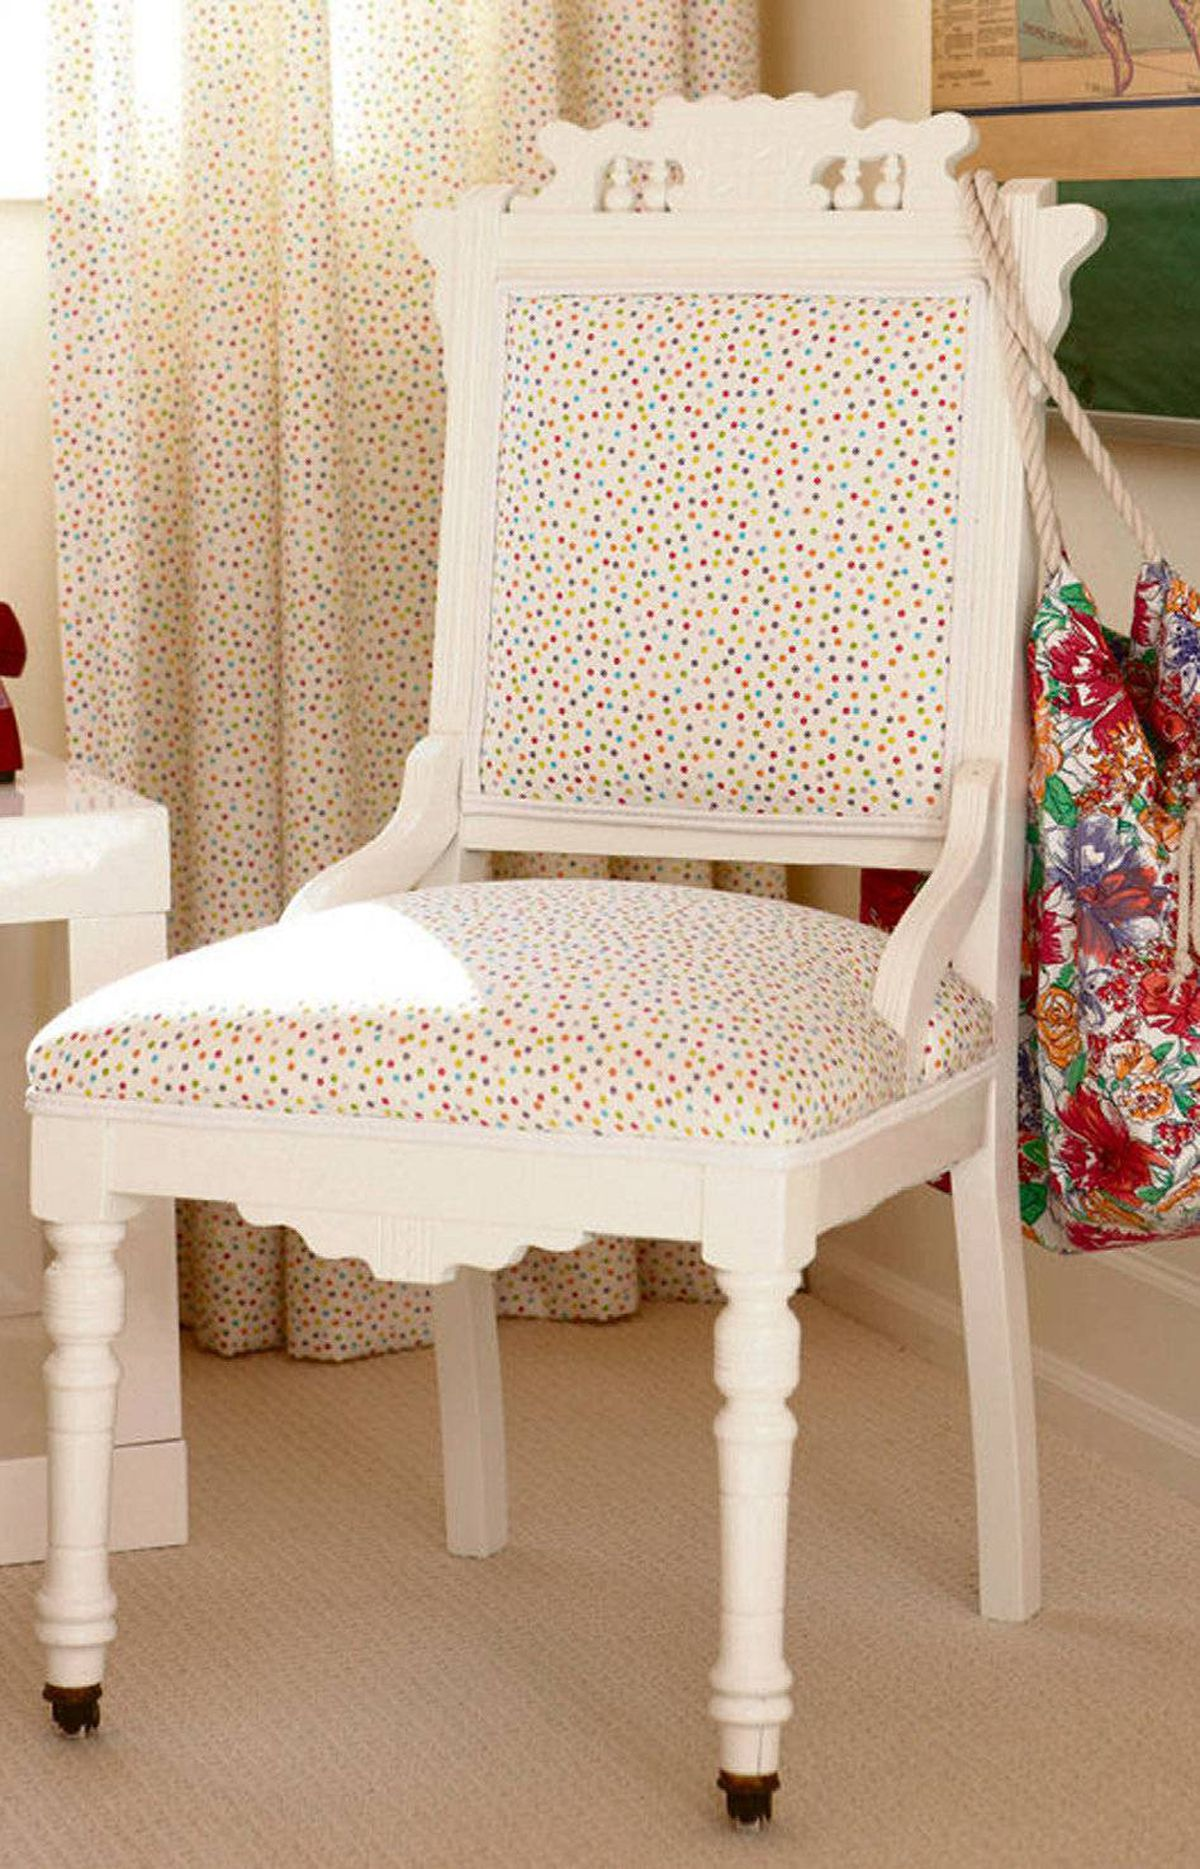 OPT FOR PATTERN This way, you can incorporate a trendy hue among other, more classic colours. Another trick is repetition: By repeating the same fabric (French toile here) in the chair and the curtains, the trendy polka-dot effect is subtle yet pulled together.